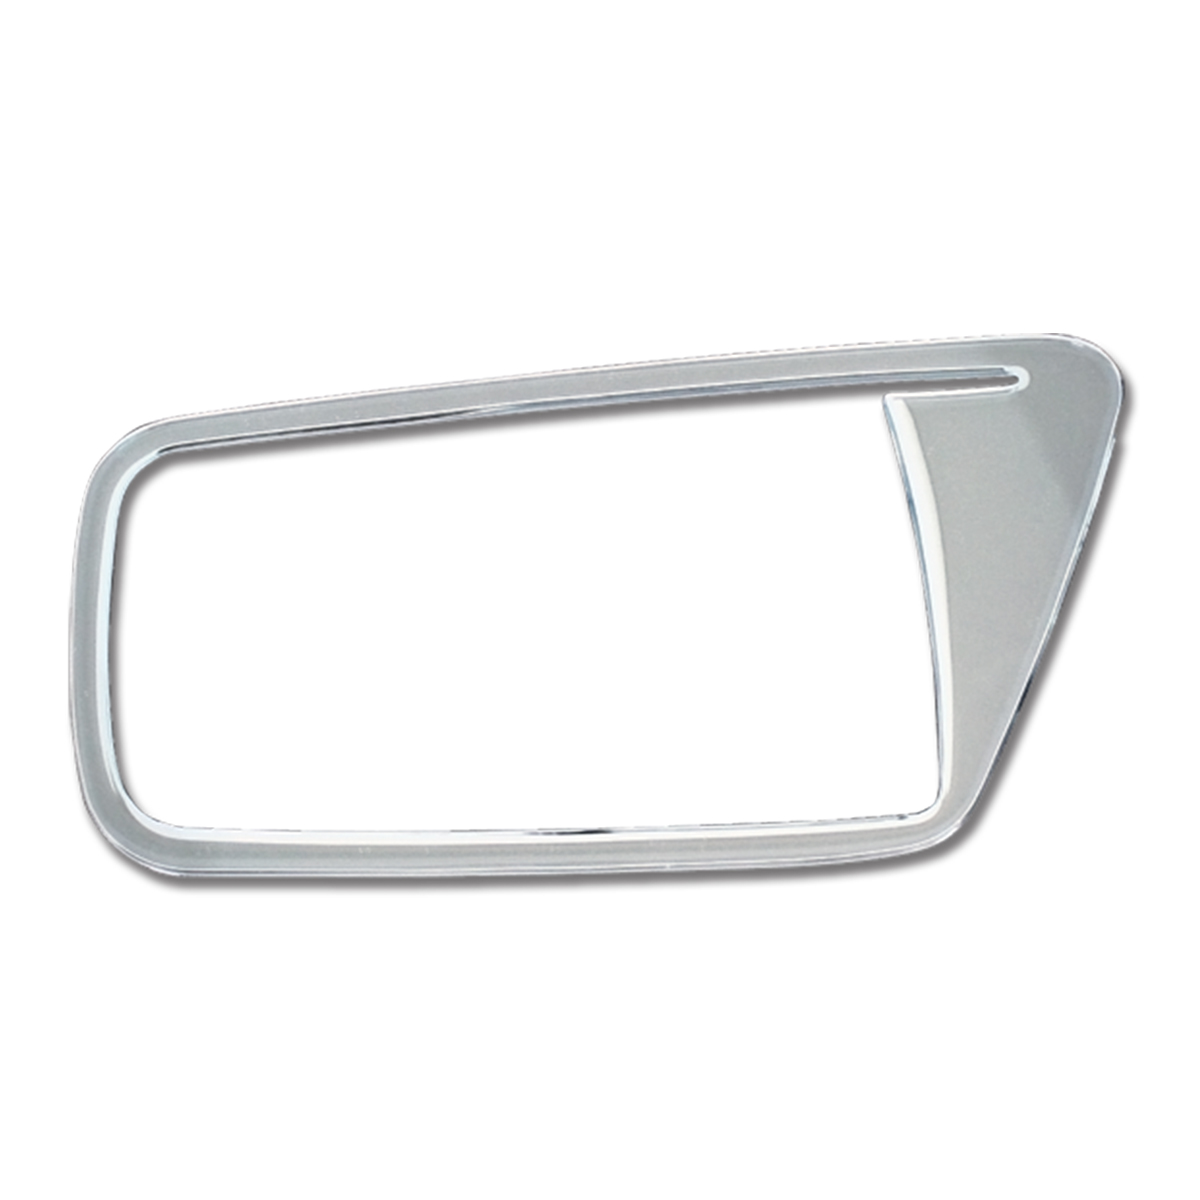 68920 KW Chrome Soft Plastic Passenger Side Door Ring